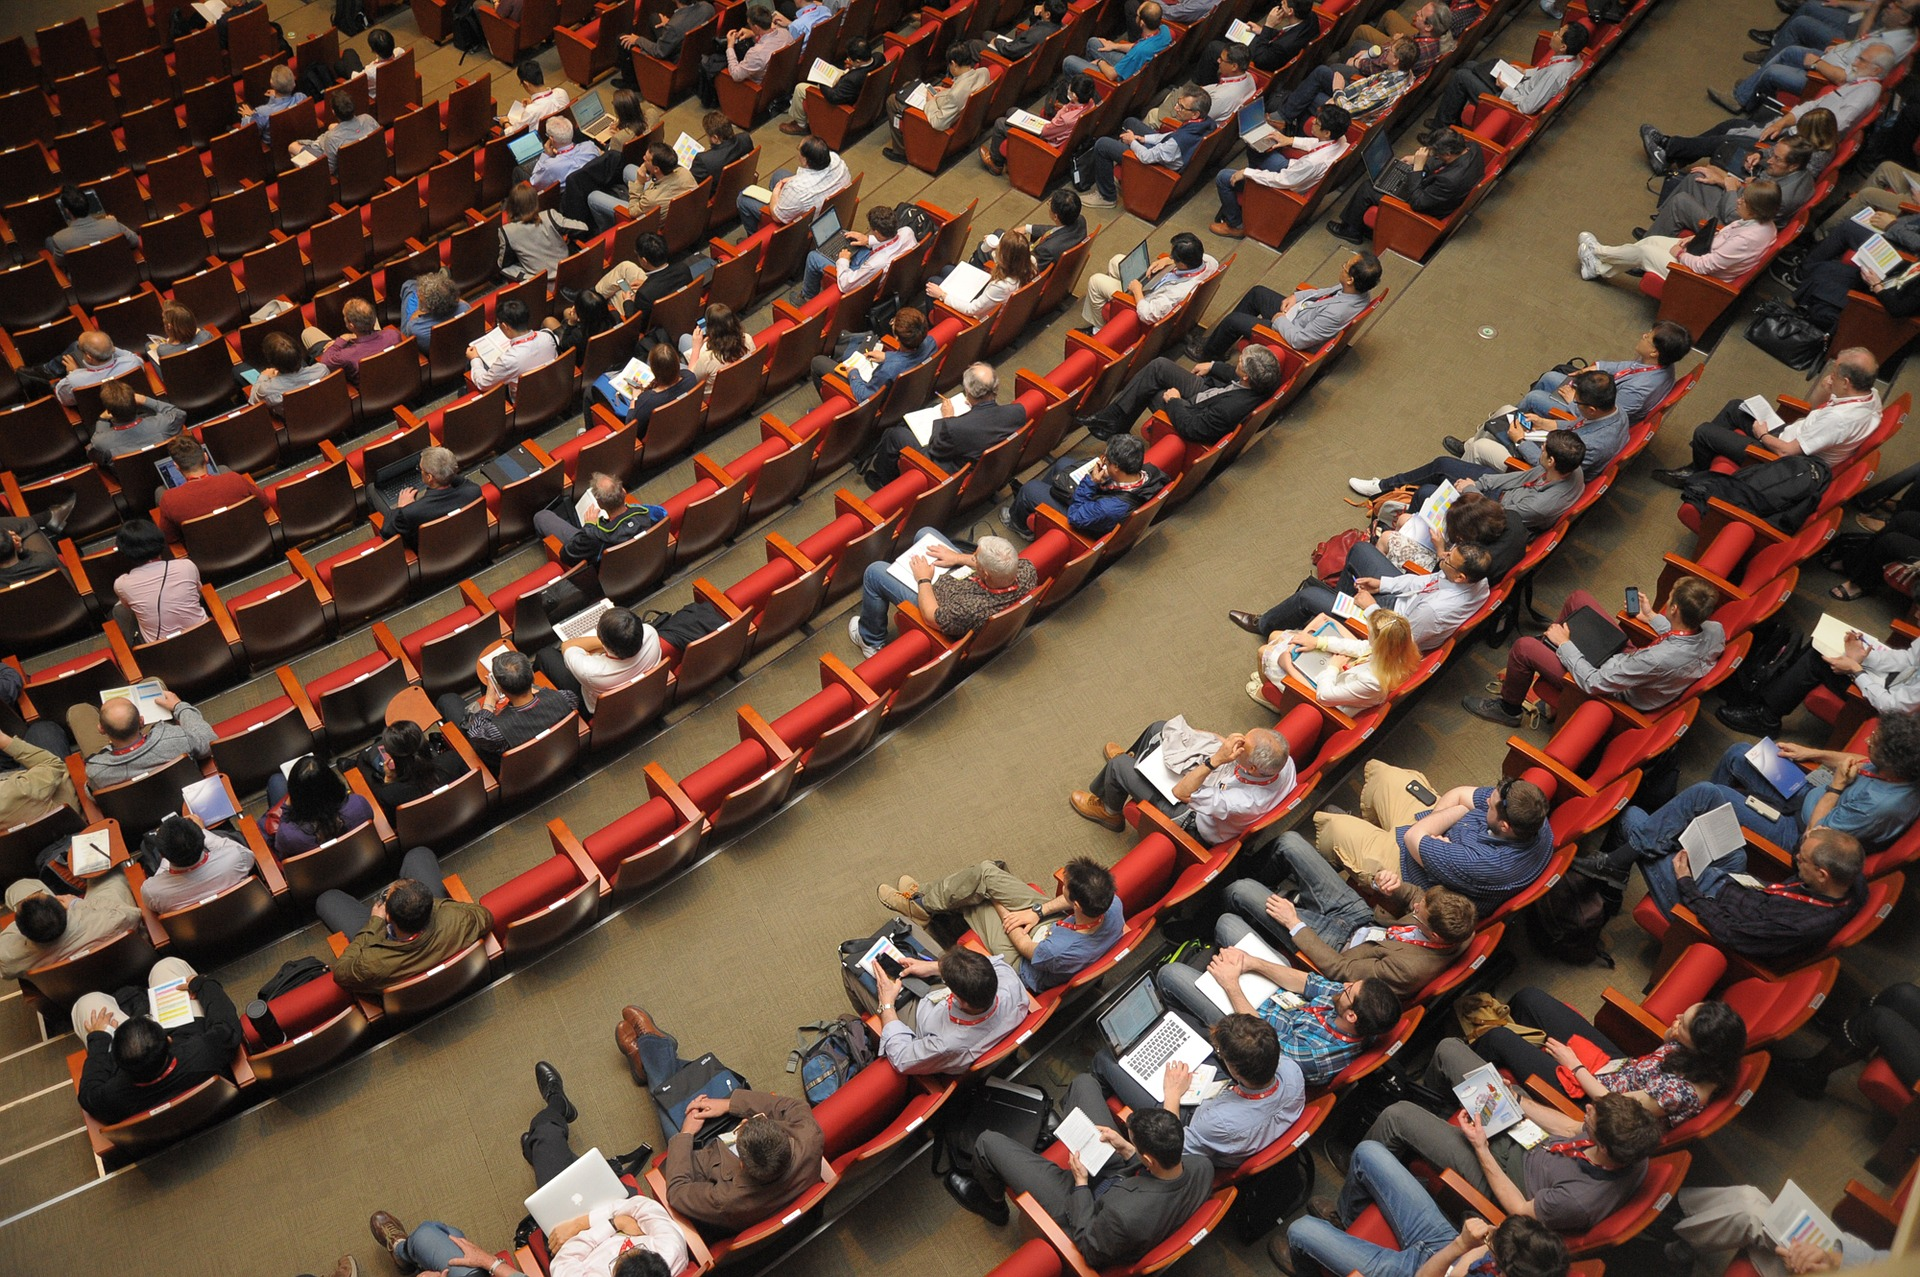 A view from above of people sitting in an auditorium, many with laptops and tablets